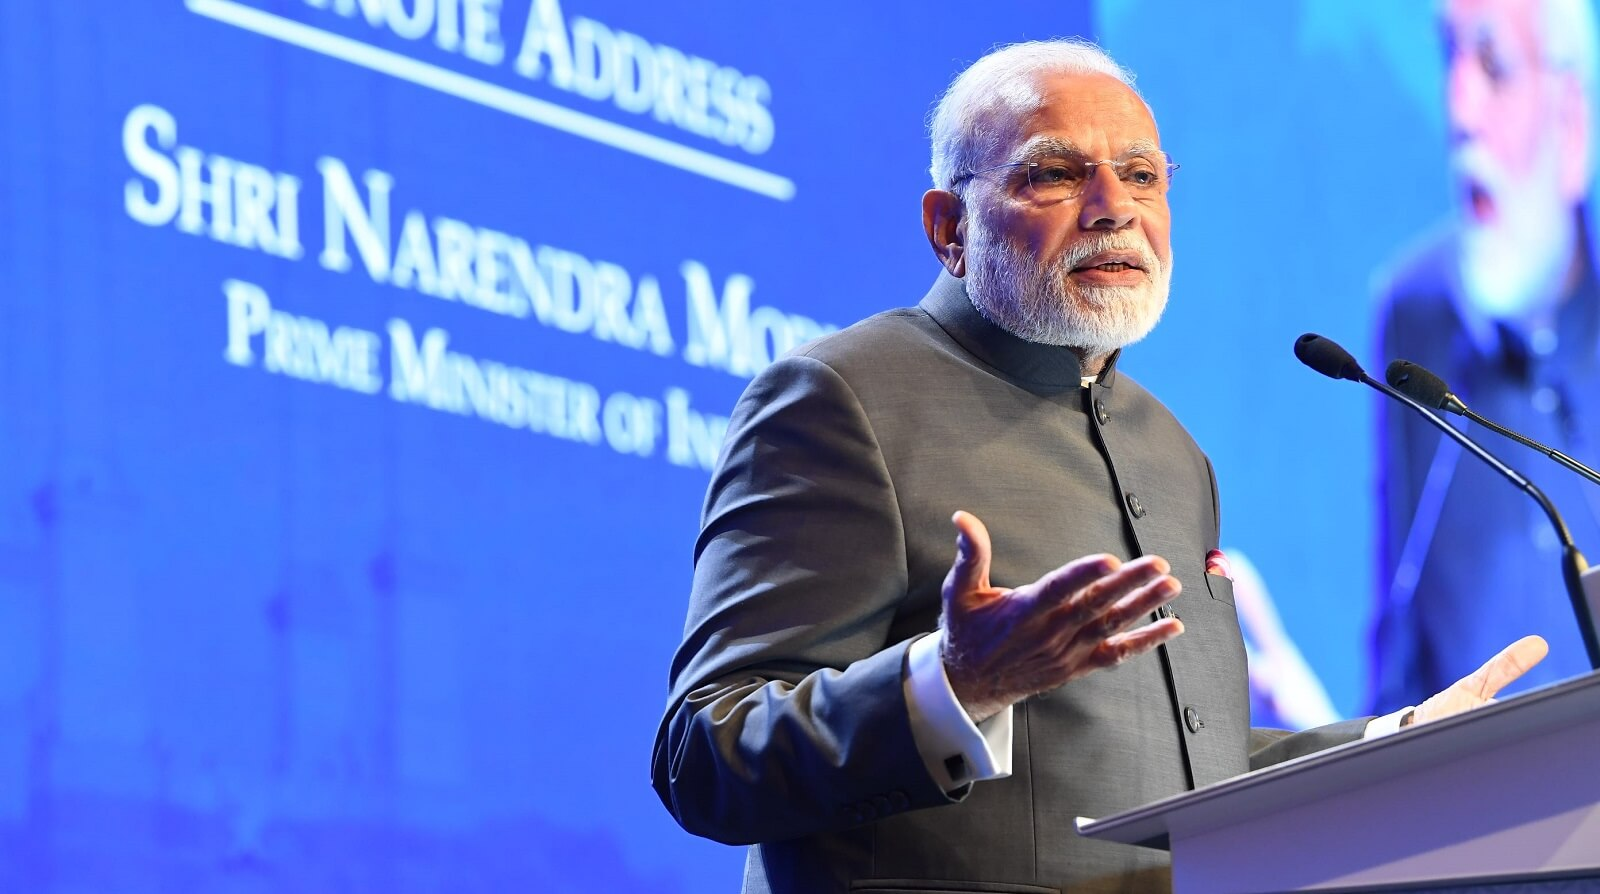 Indian Prime Minister Narendra Modi at the Shangri-La Dialogue, Singapore, 1 June (Photo: MEAphotogallery/Flickr)